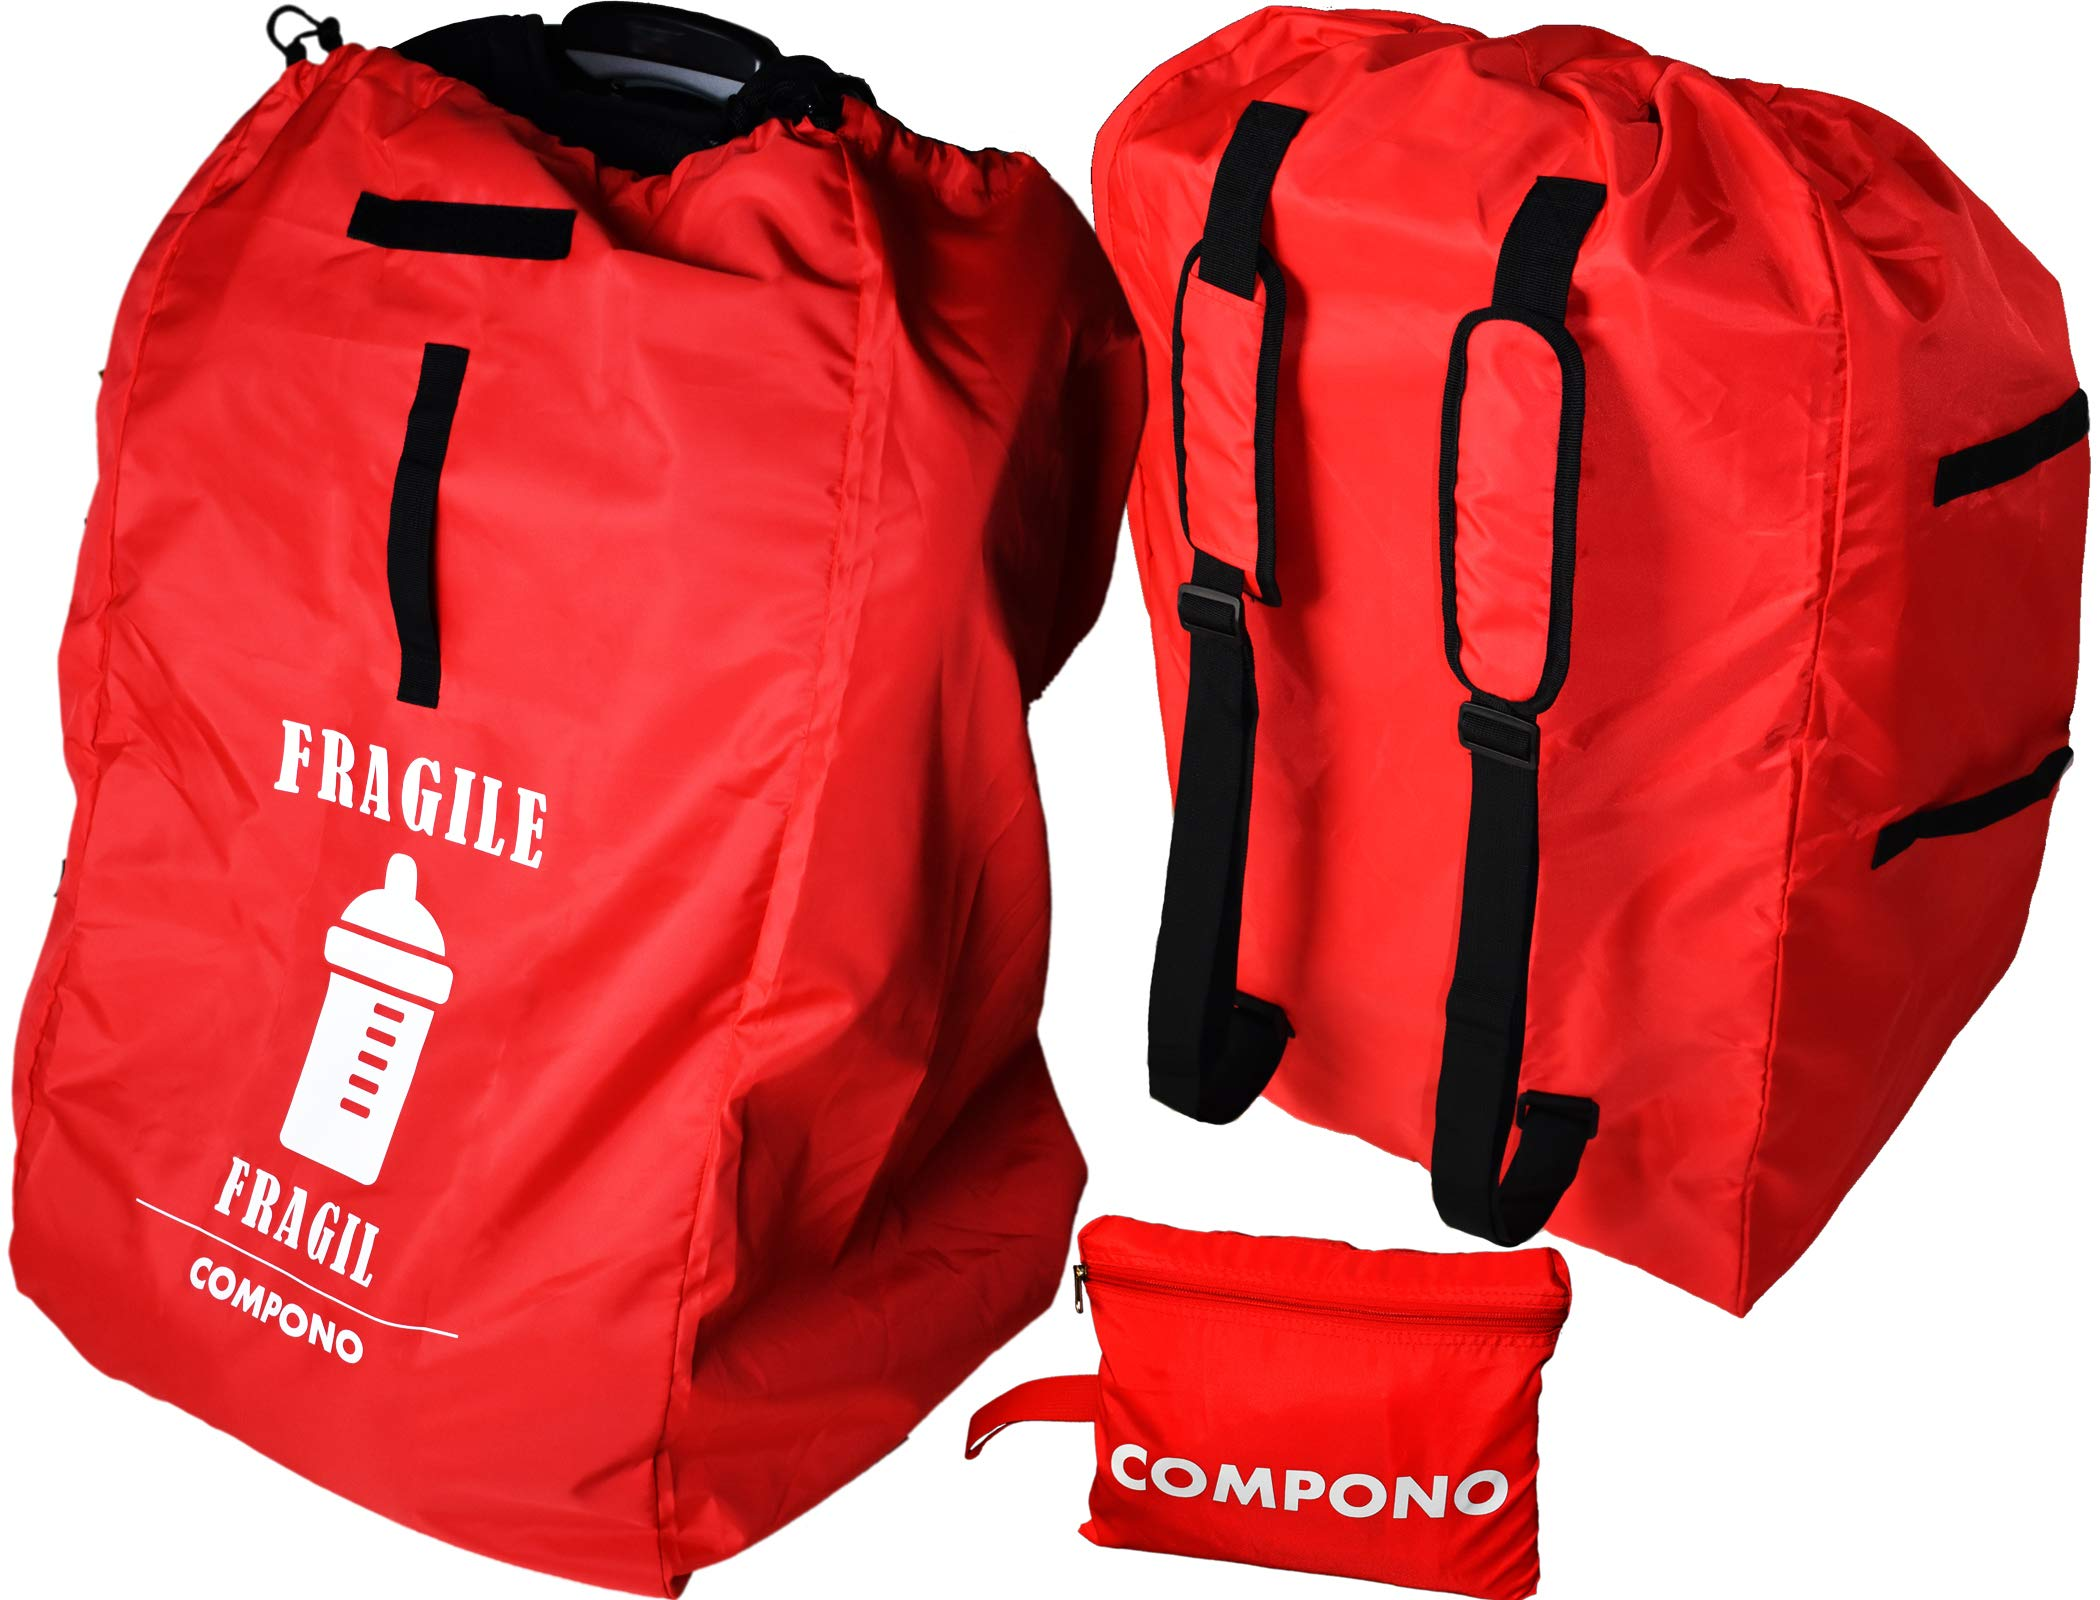 COMPONO Premium Car Seat Travel Bag - Best car seat Backpack with Padded Straps for Easy Carry by COMPONO